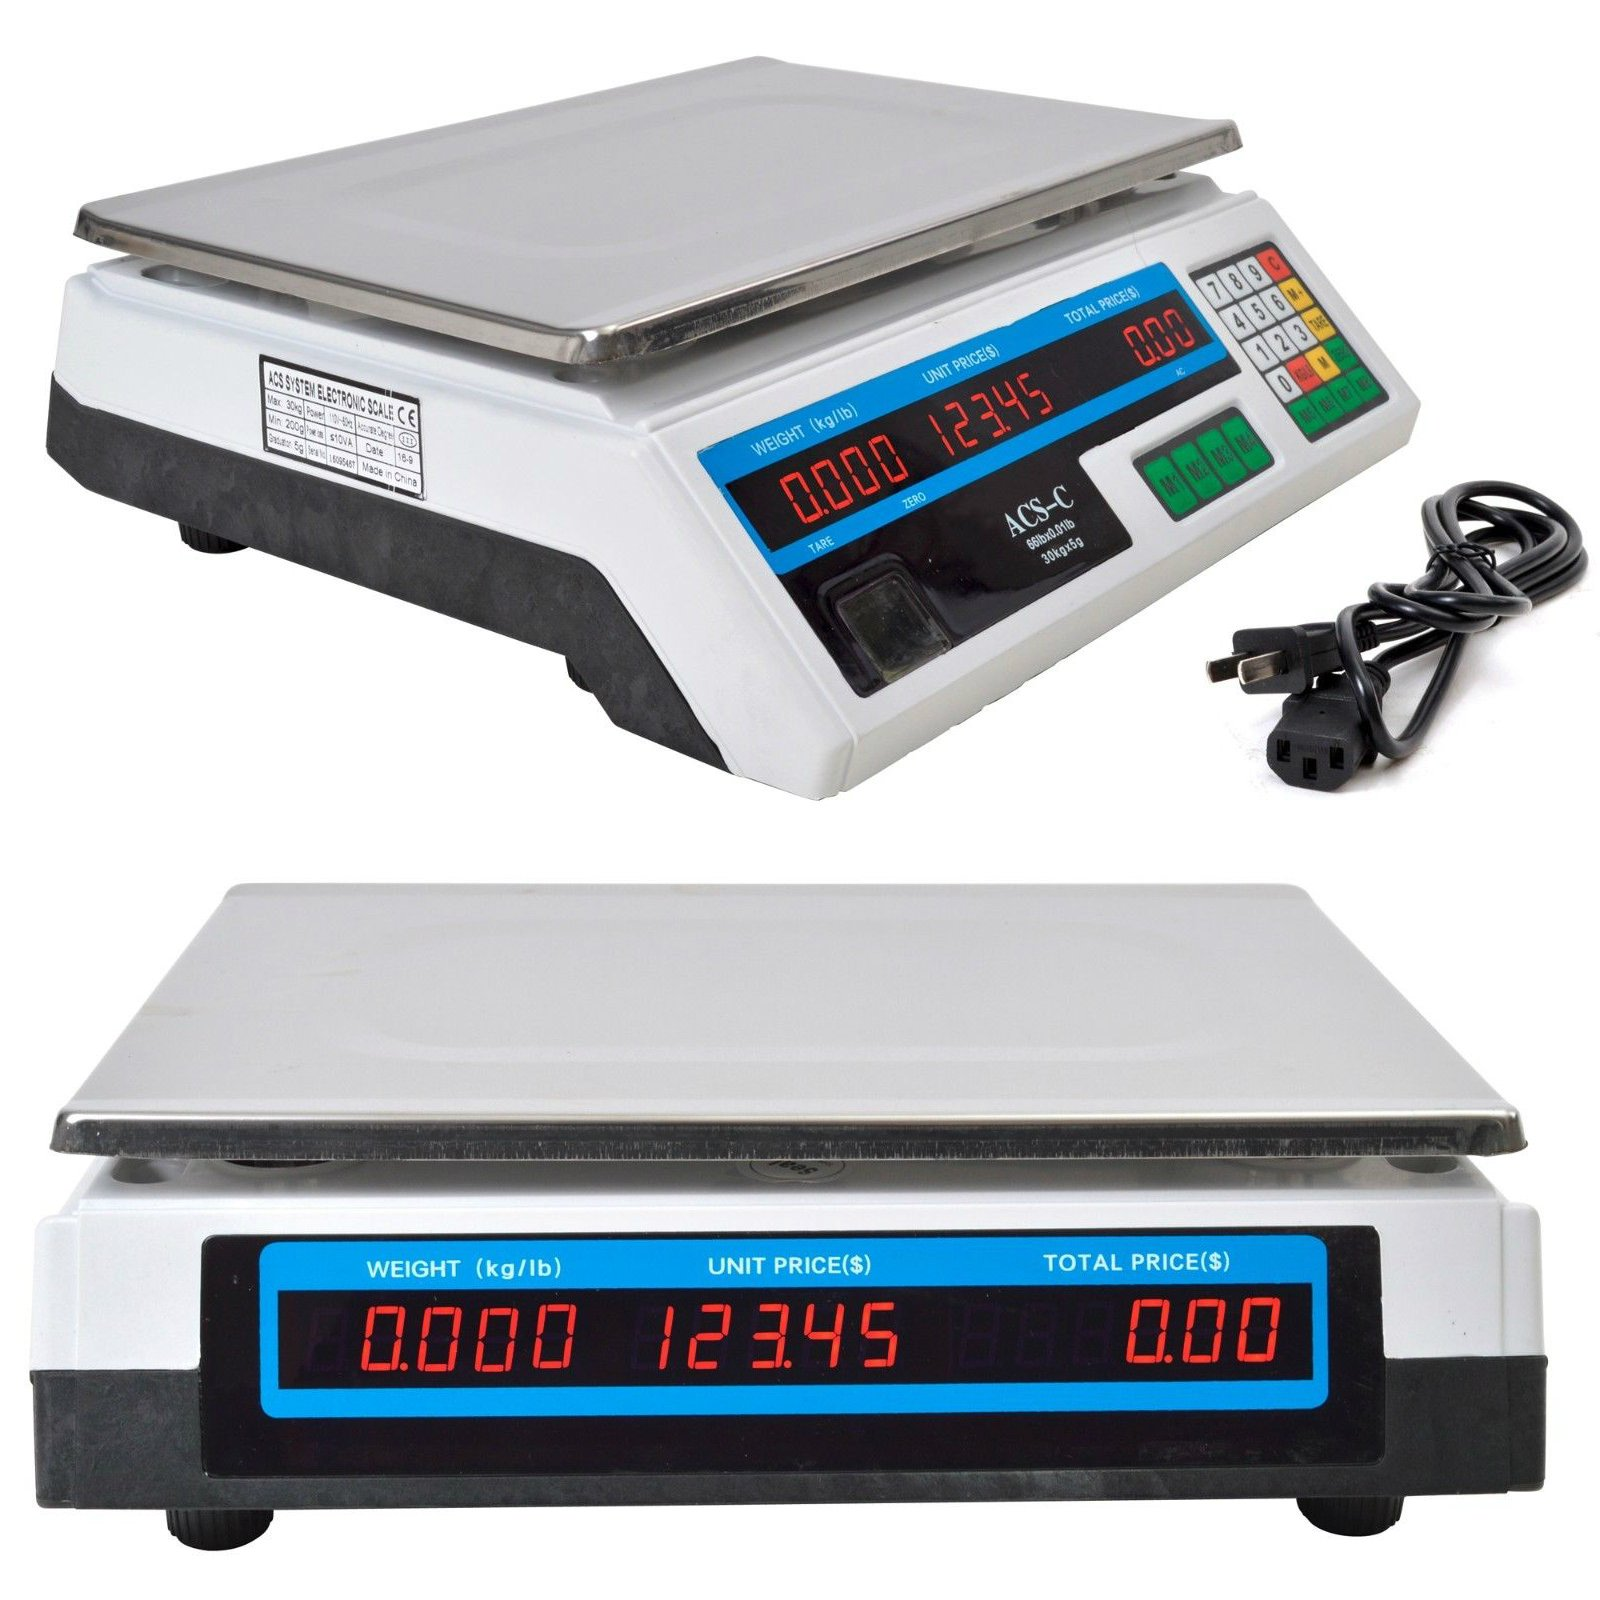 66LB/30KG Food Deli Scale   Food Meat Price Computing Digital Display Weight Scale ACS Electronic Counter Supermarket Price Scale Outlet Store